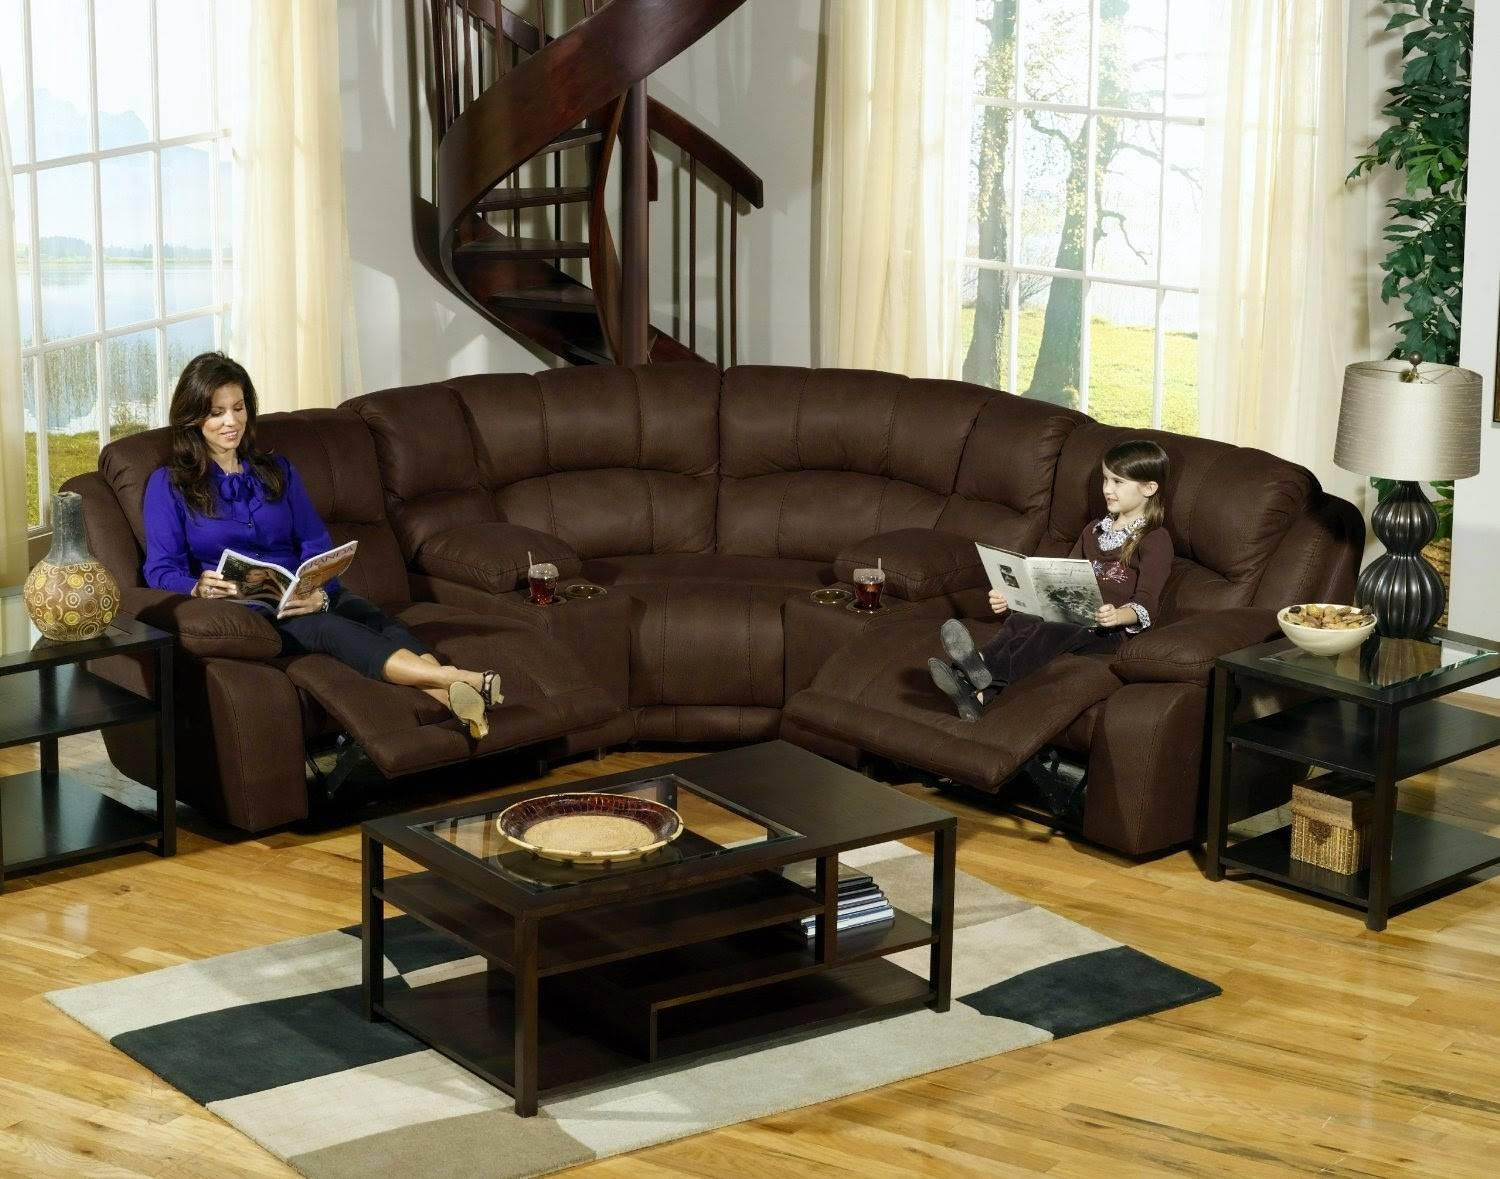 Best Leather Sectional Sofa With Power Recliner 59 On Durable intended for Durable Sectional Sofa (Image 8 of 30)